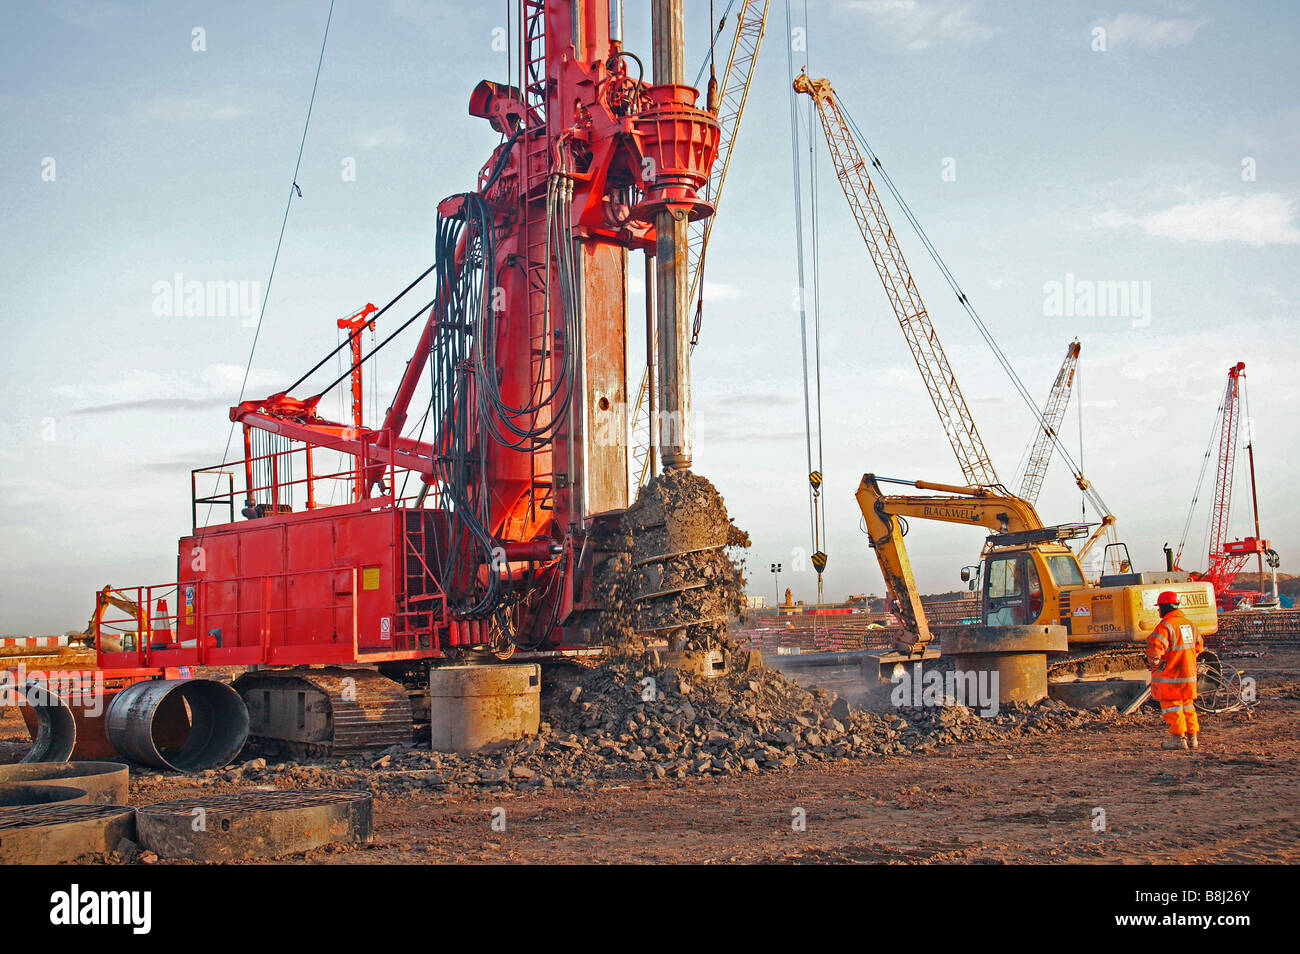 Boring Building Material : Rotary drilling rig spinning excavated material from its